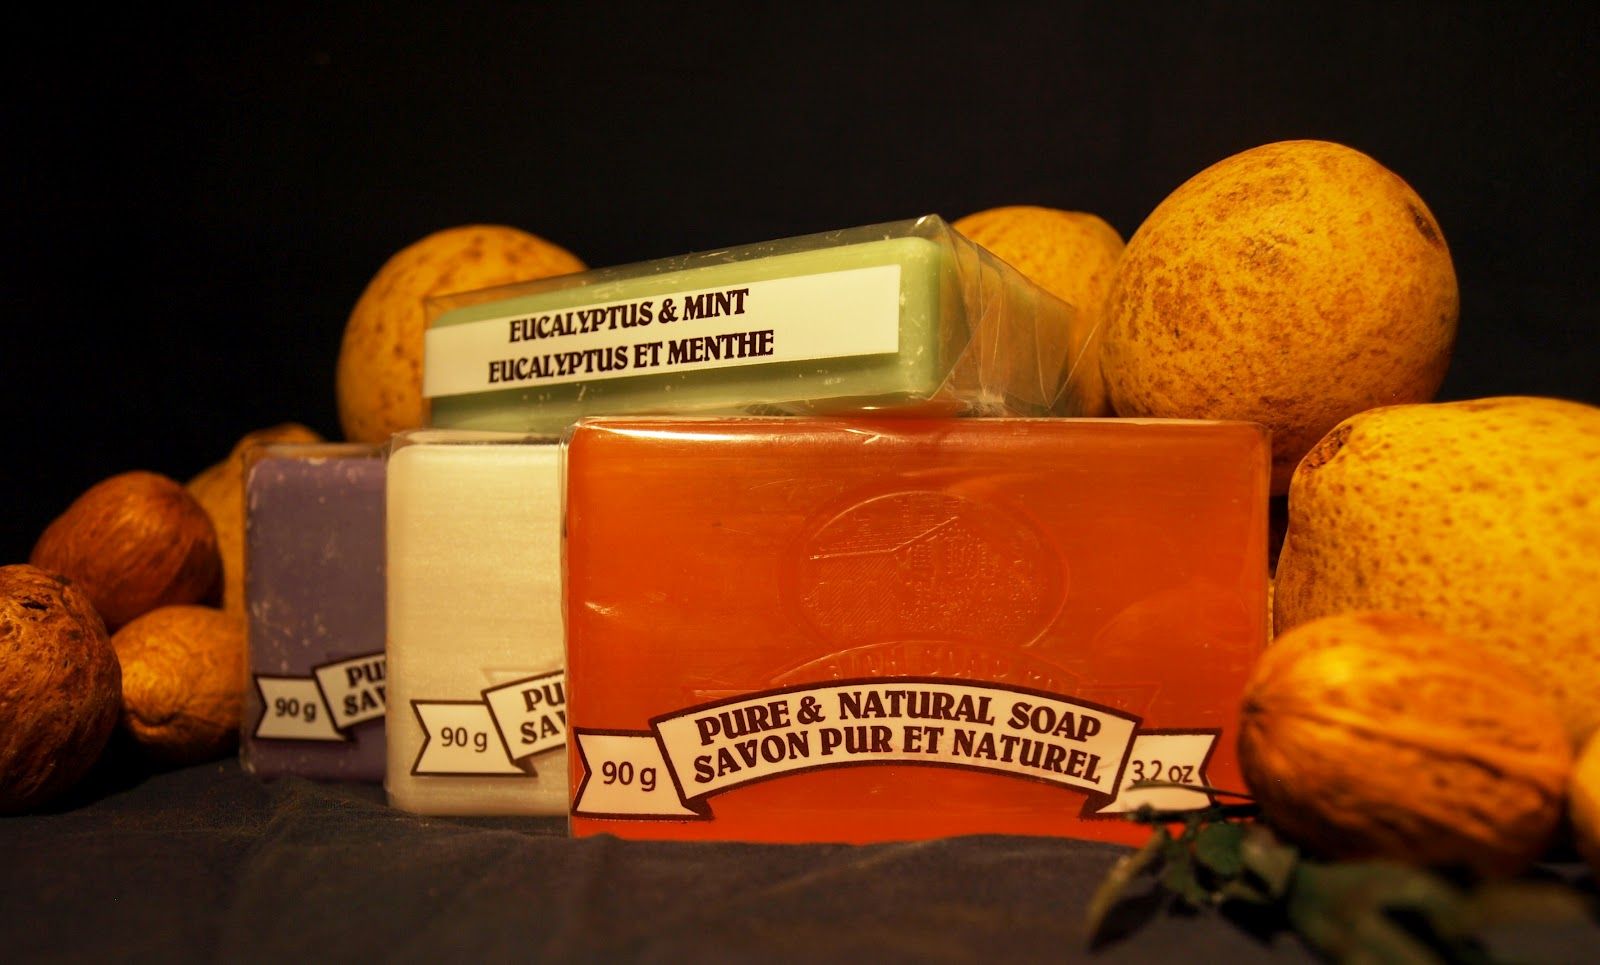 Guelph Soap Company: Measuring up Against David Suzuki's